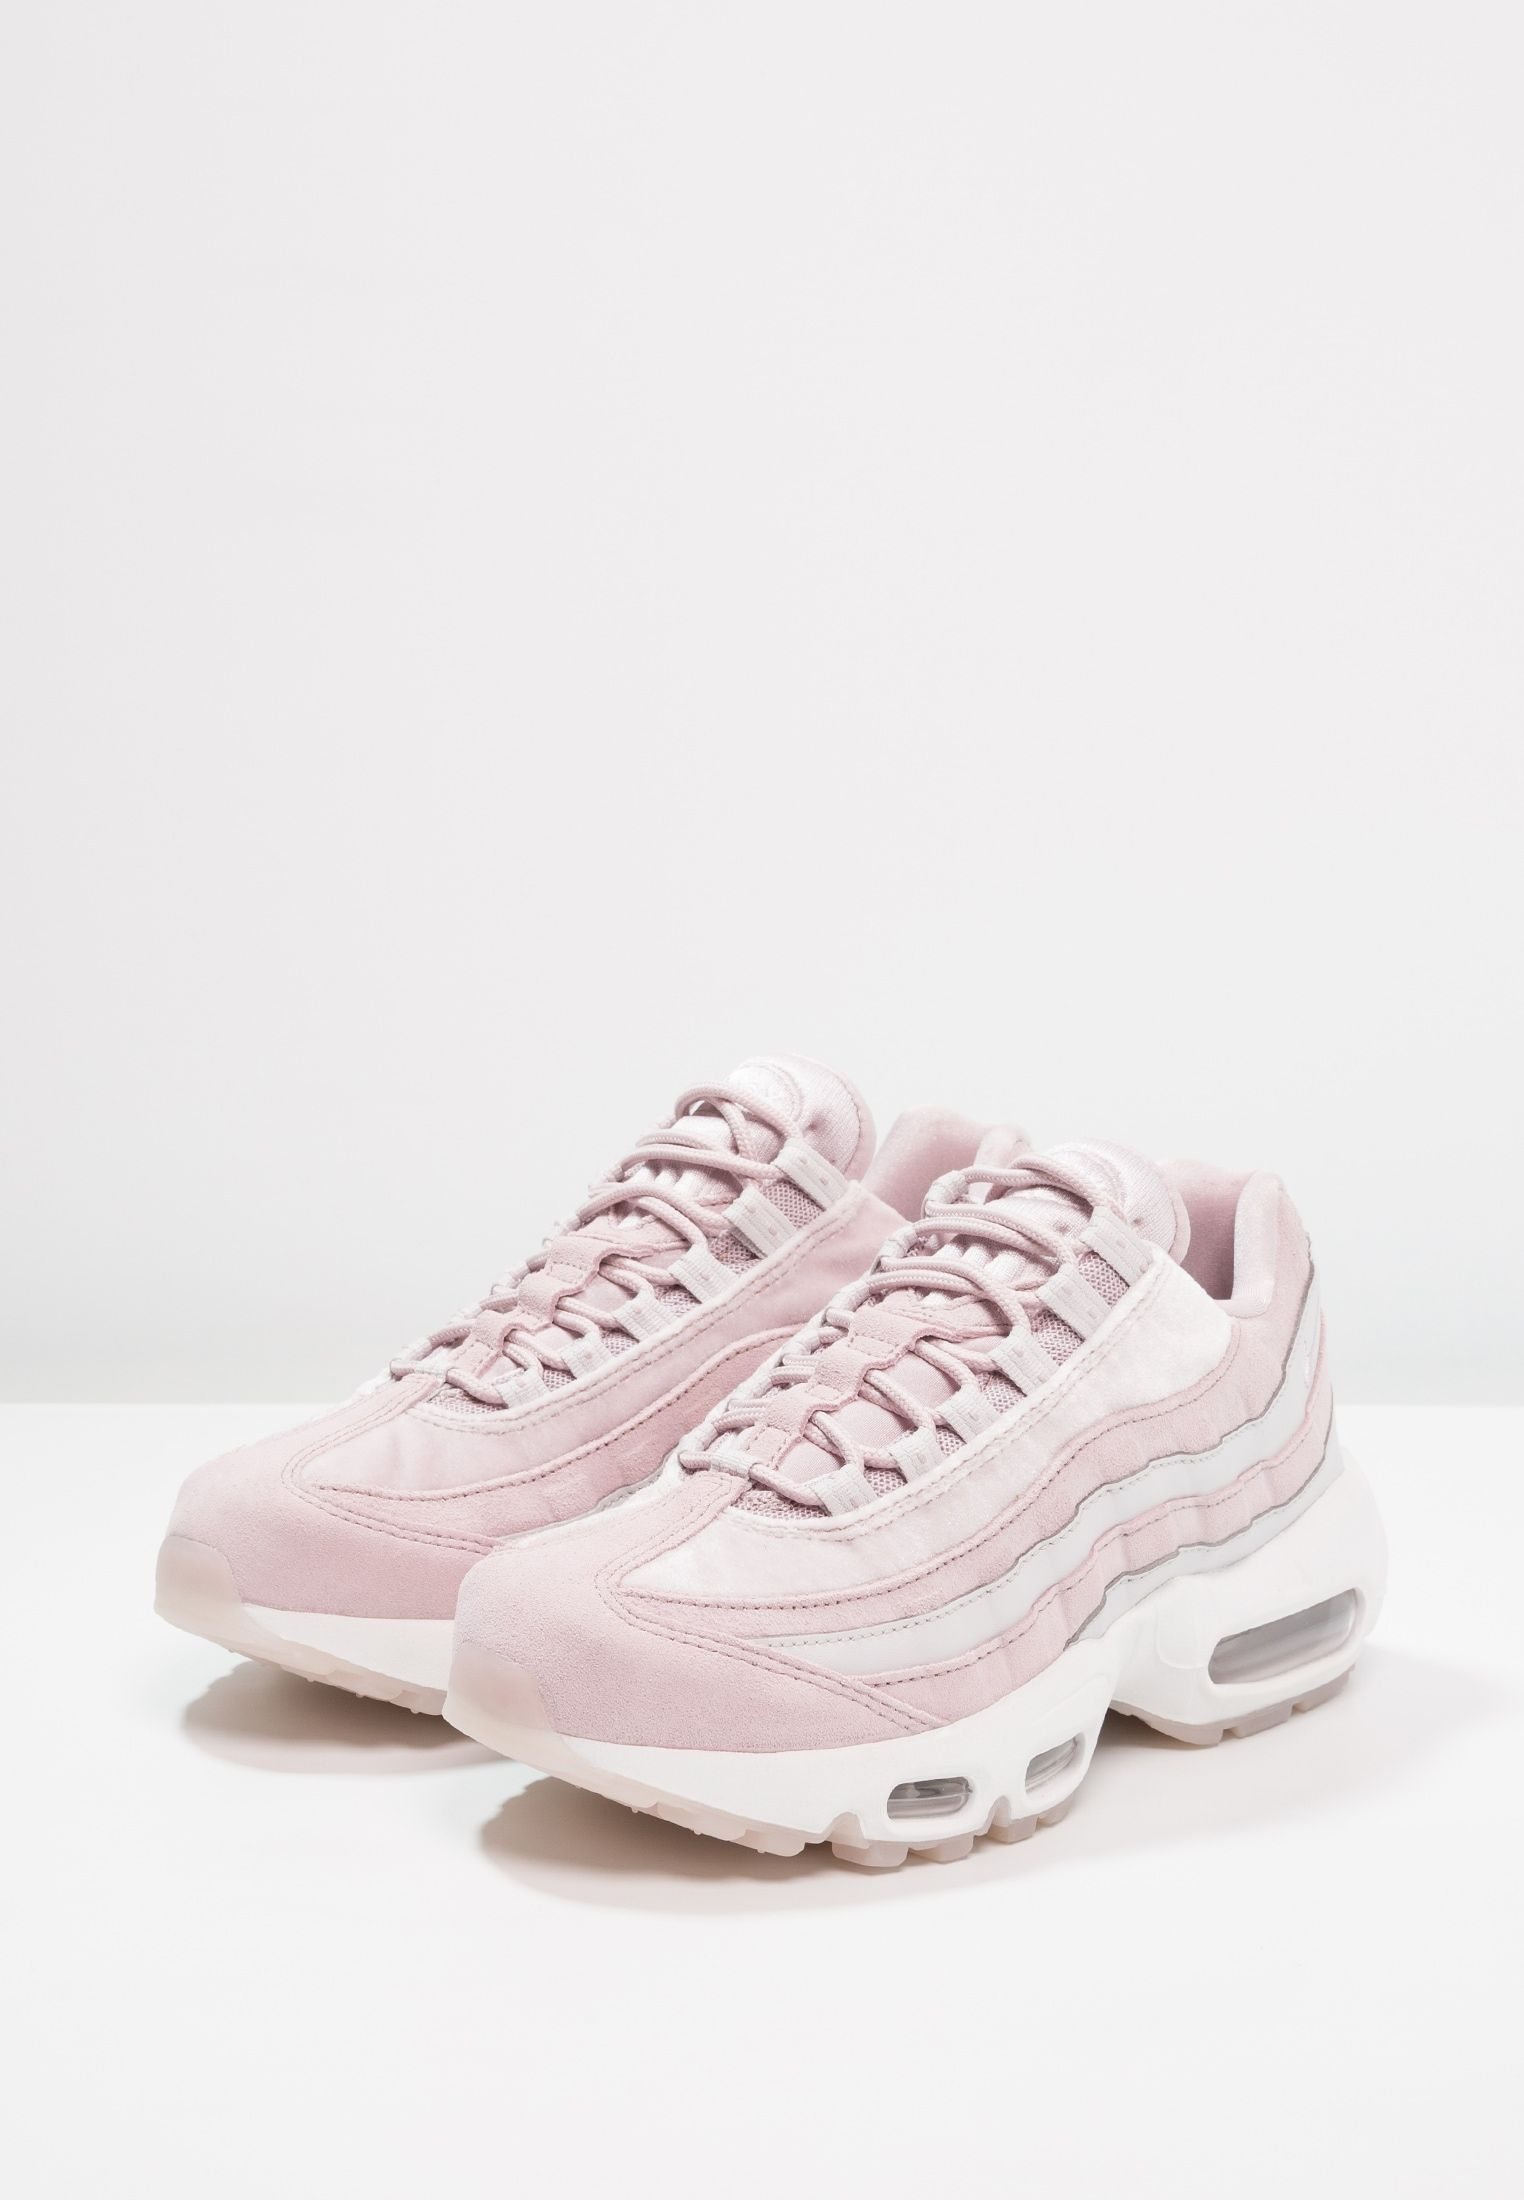 size 40 f5824 4d562 Nike Sportswear AIR MAX 95 - Sneakers - particle rose vast grey summit white